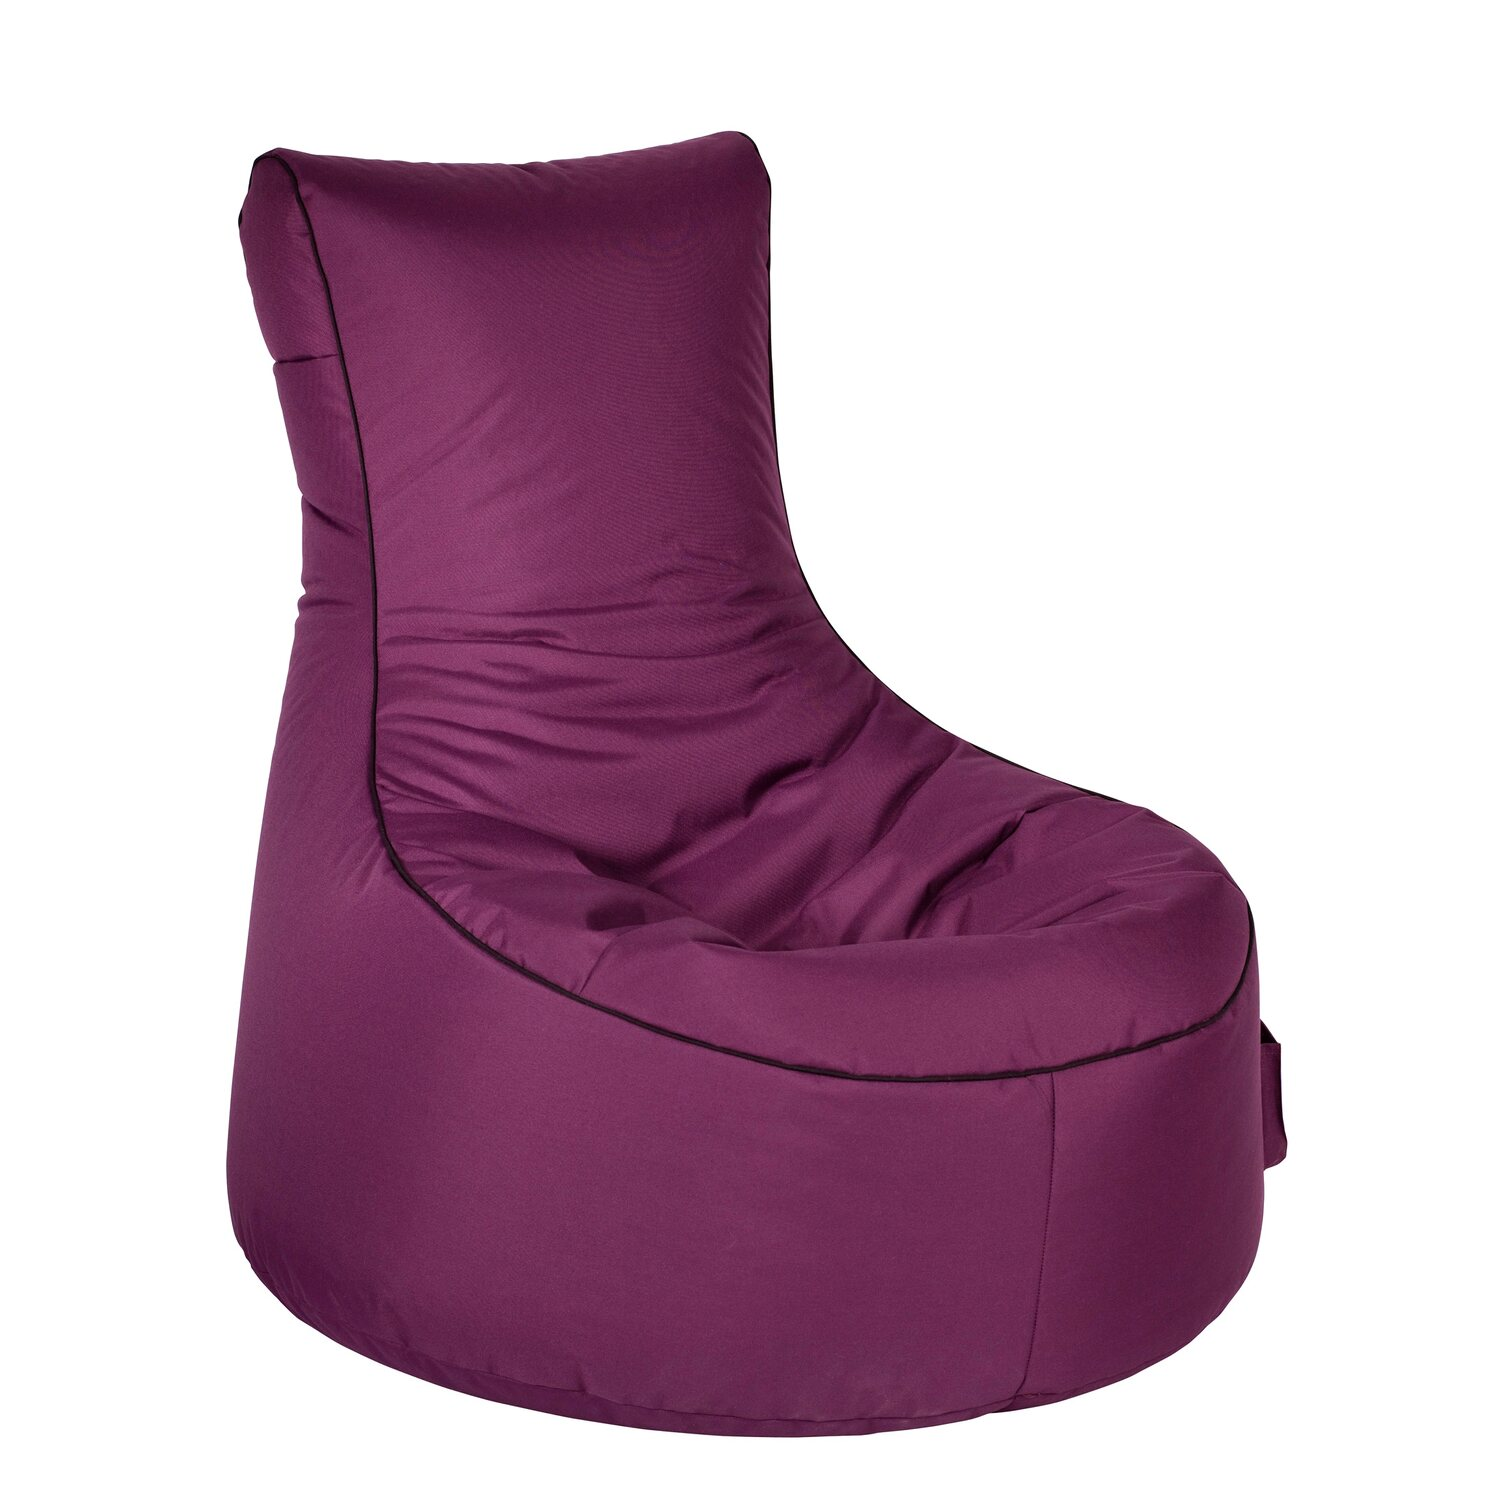 sitting point sitzsack swing scuba 300 l aubergine kaufen. Black Bedroom Furniture Sets. Home Design Ideas